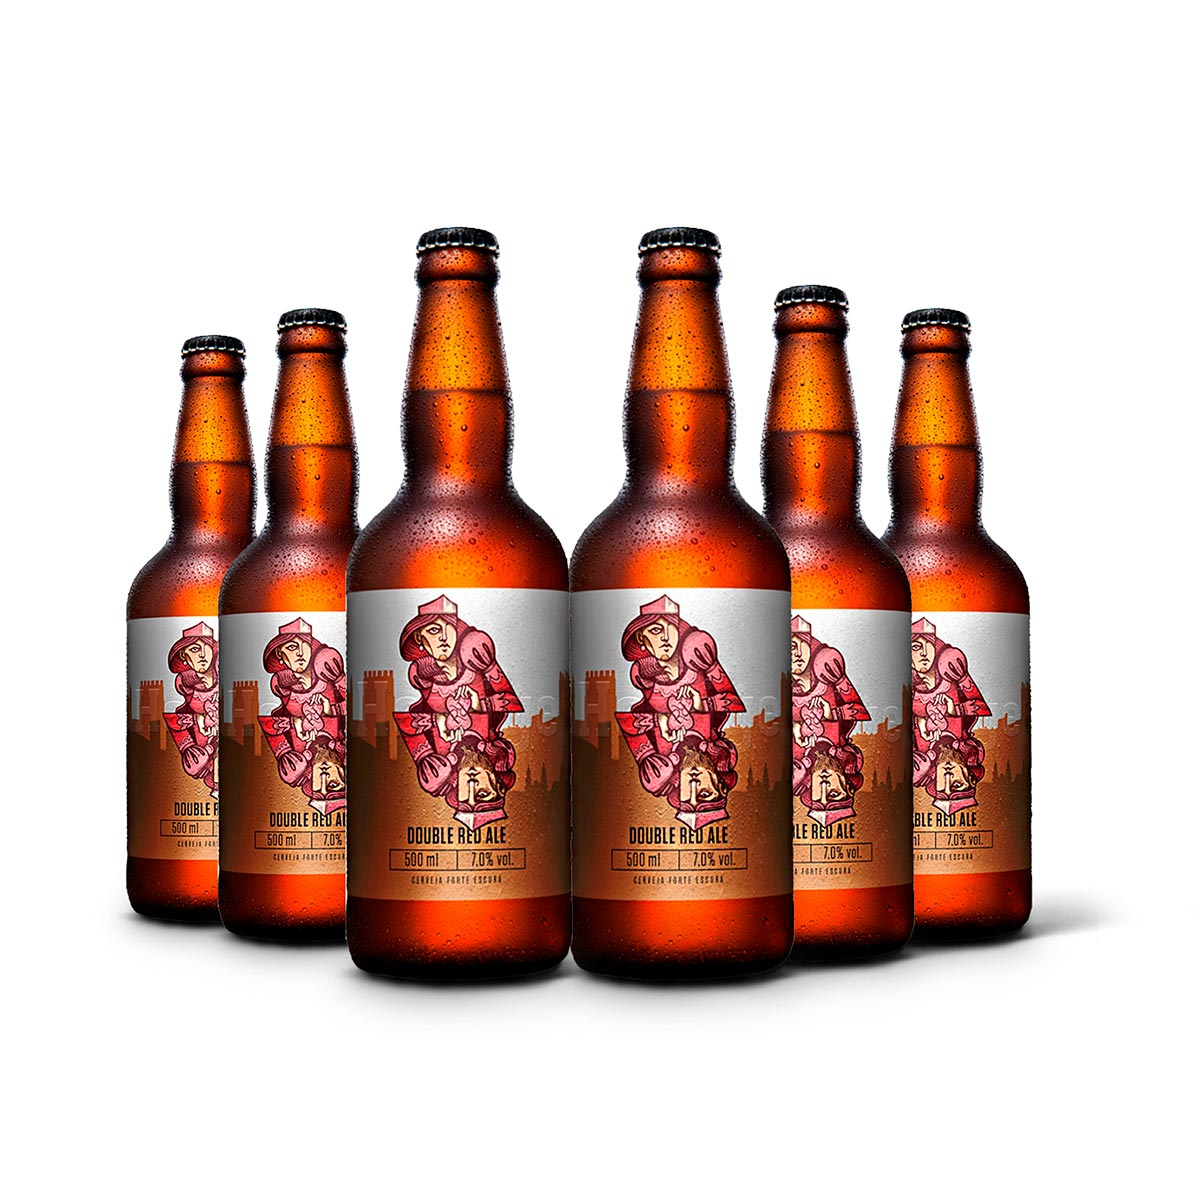 Pack Heilige Double Red Ale 6 cervejas 500ml